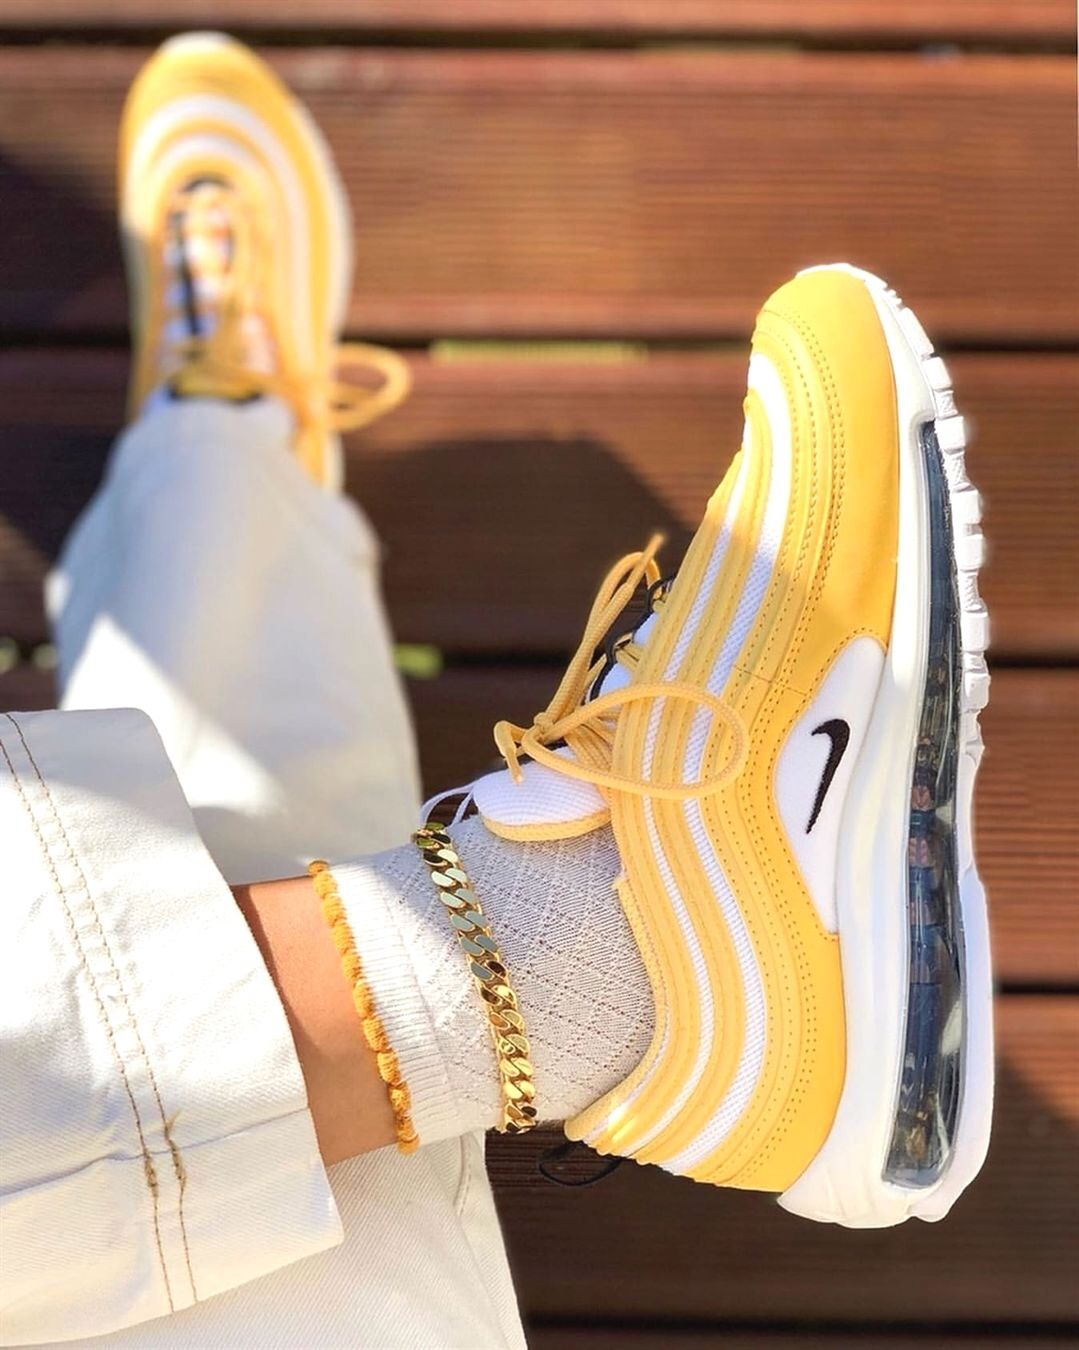 nike air max 97 with socks fit